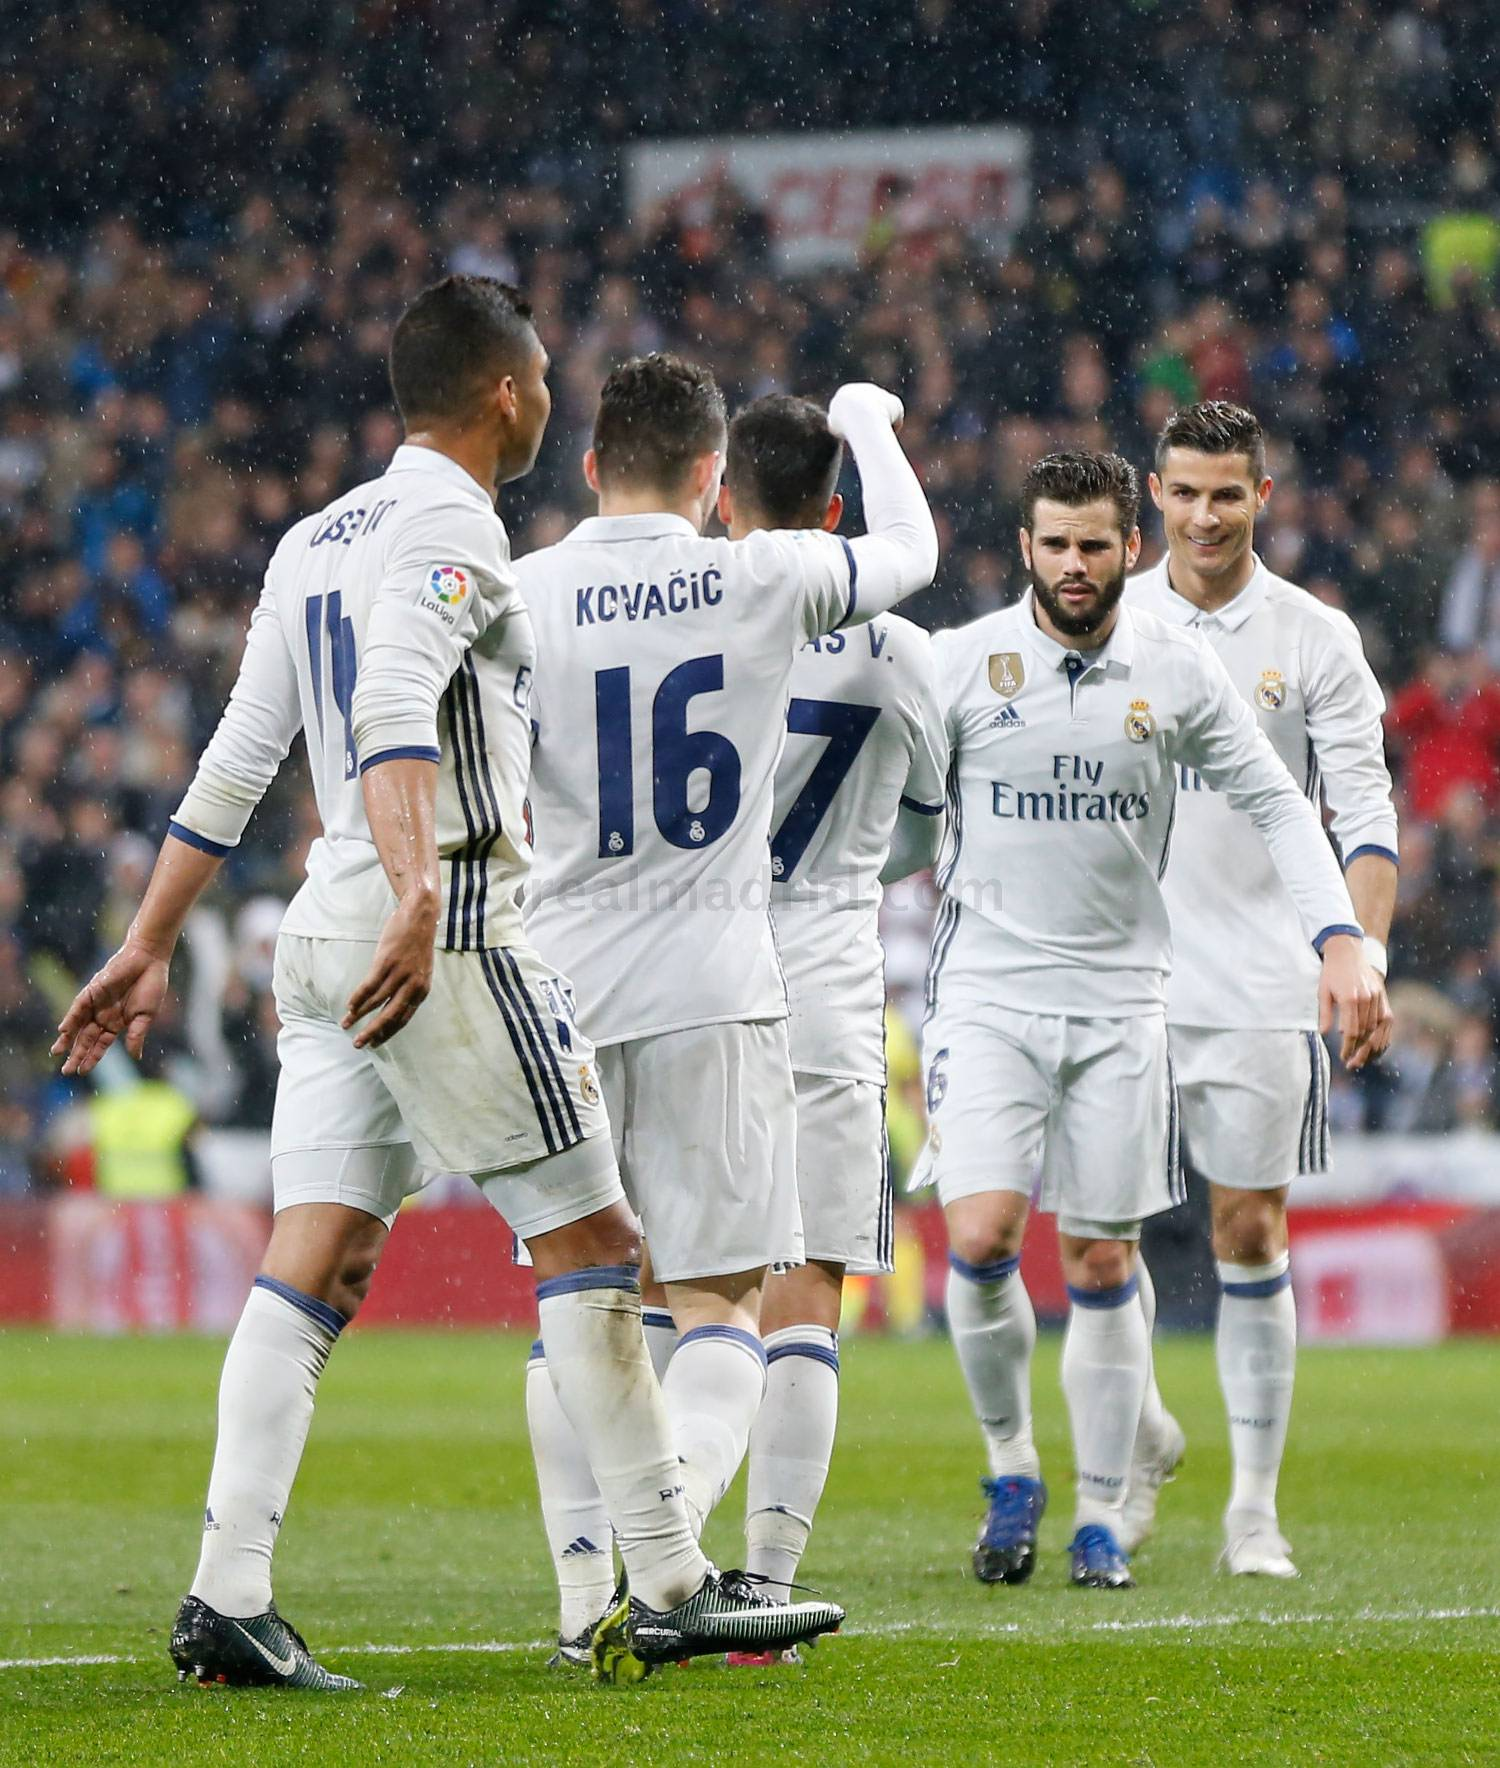 Real Madrid - Real Madrid - Real Sociedad - 29-01-2017